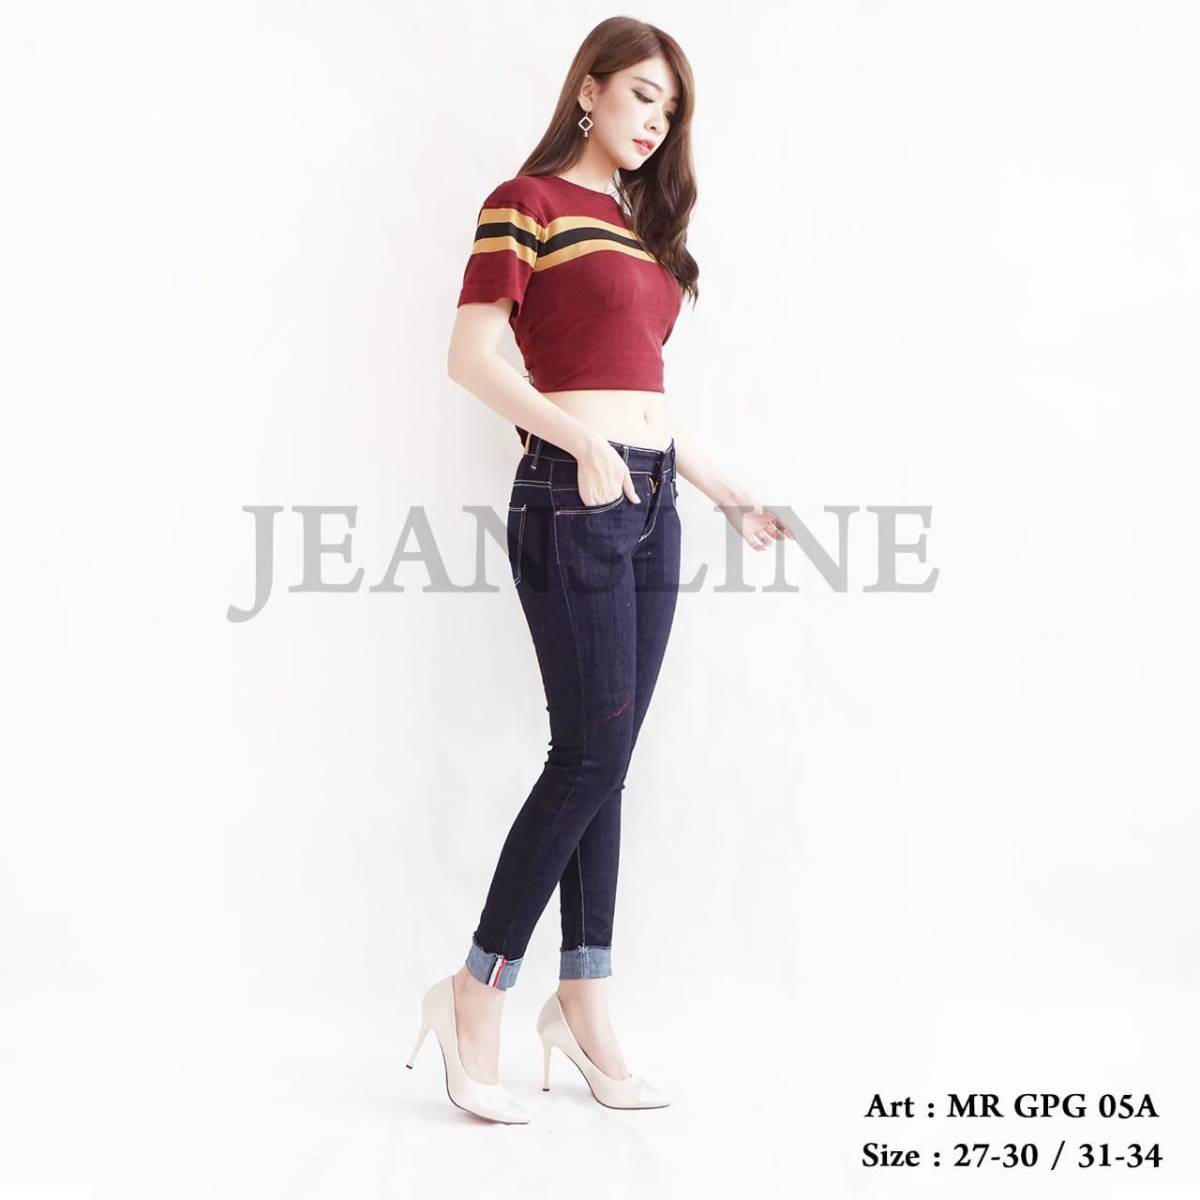 Celana Panjang Jeans Ladies (mr Gpg 05a) - Paket 4 Pcs - Size 27, 28, 29, 301